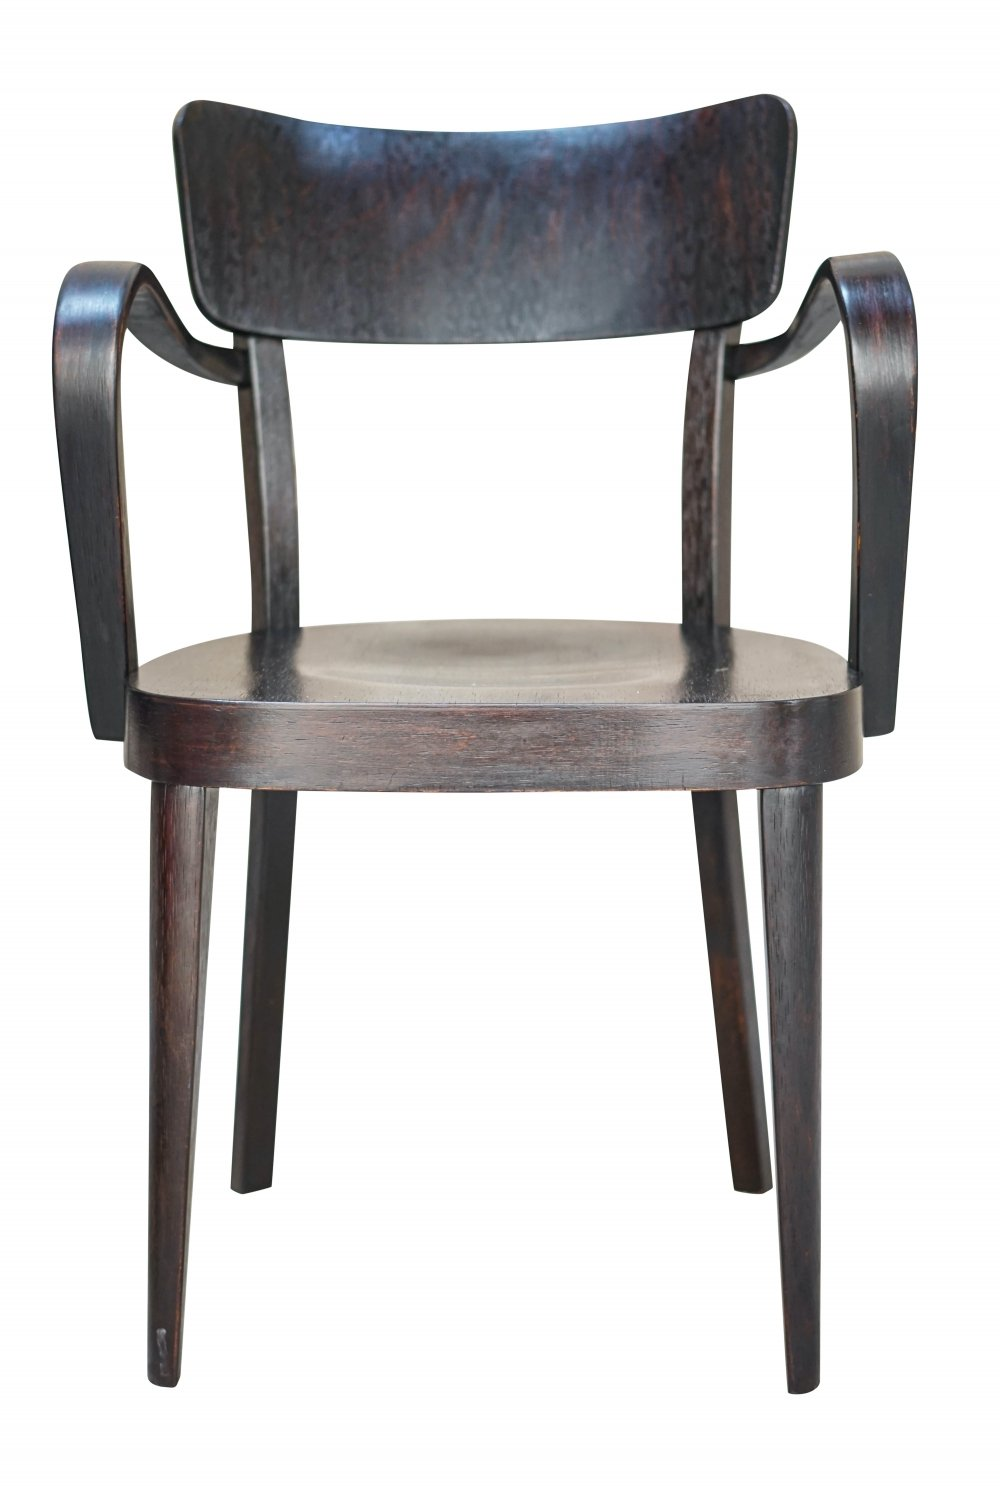 2 x A 524/1 F Thonet chairs, 1950s